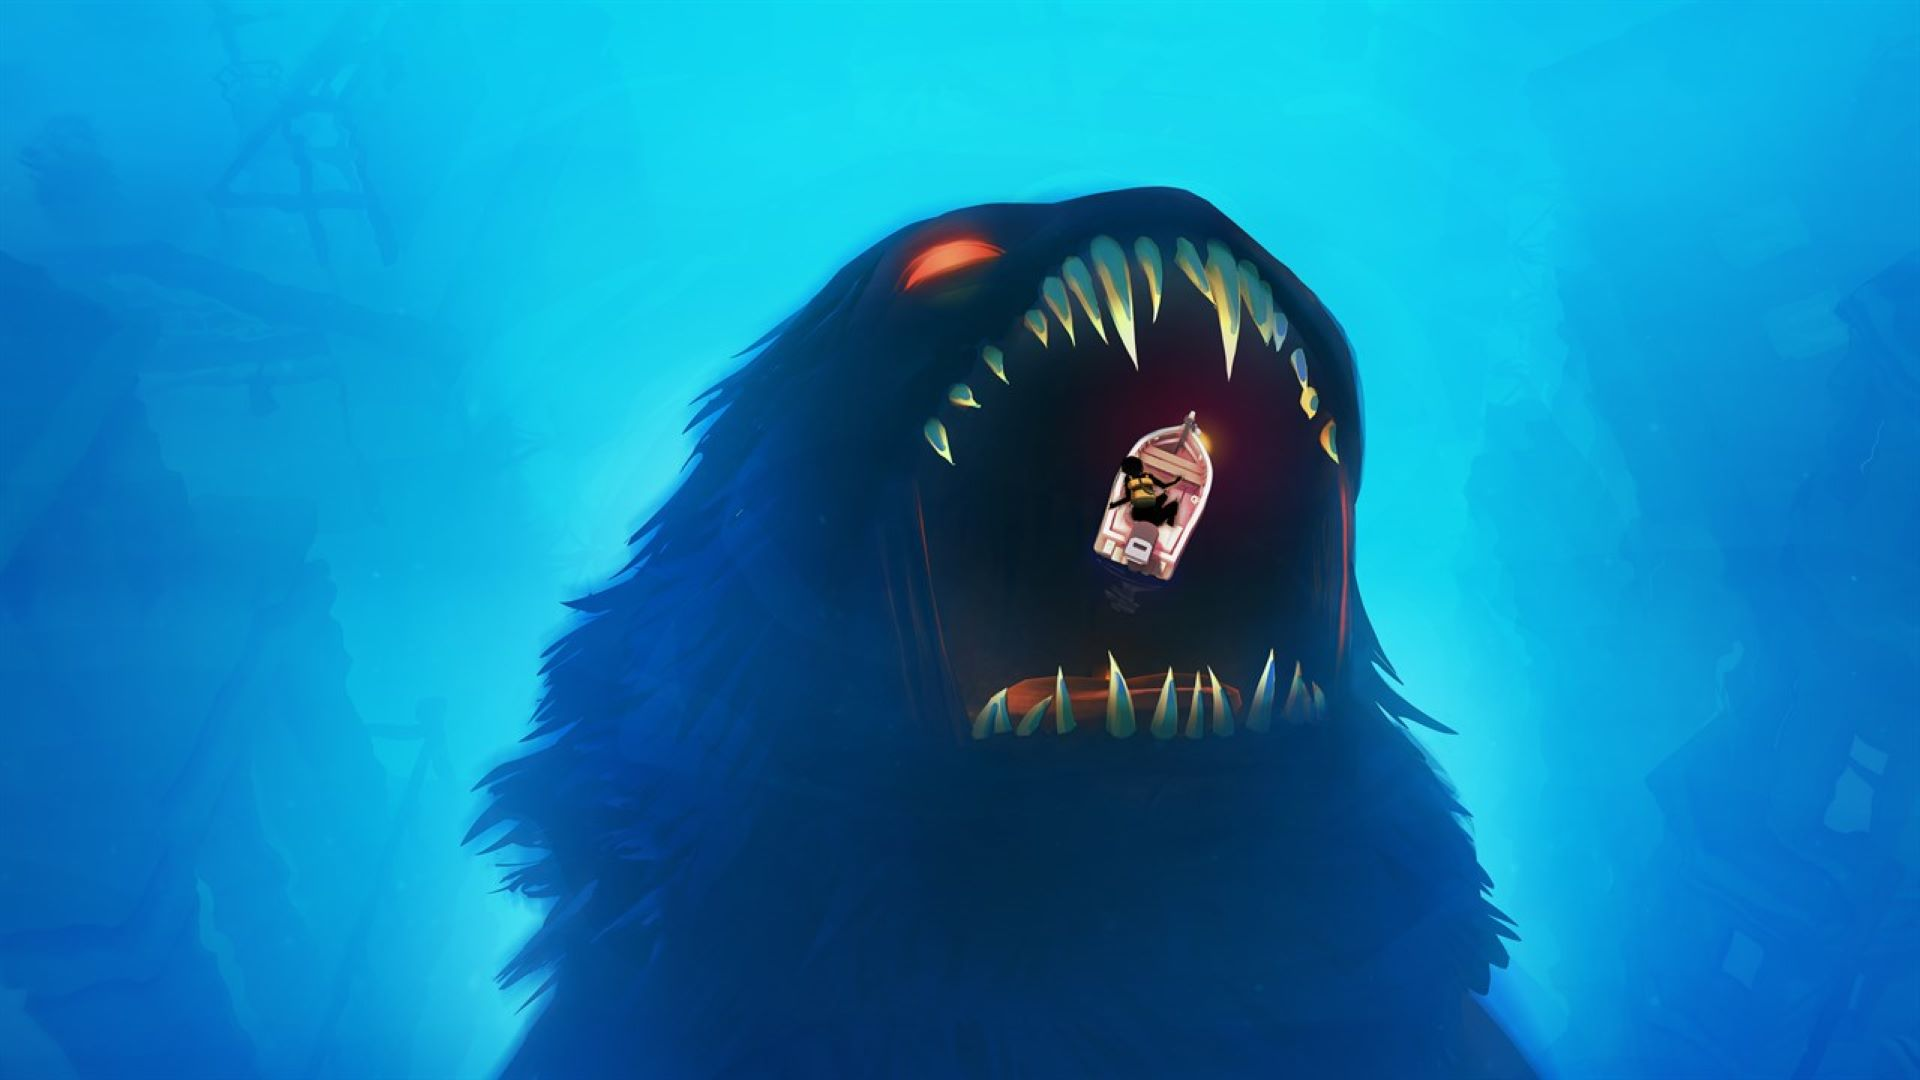 Sea of Solitude's Ever-Present Monster is the Perfect Metaphor for Loneliness